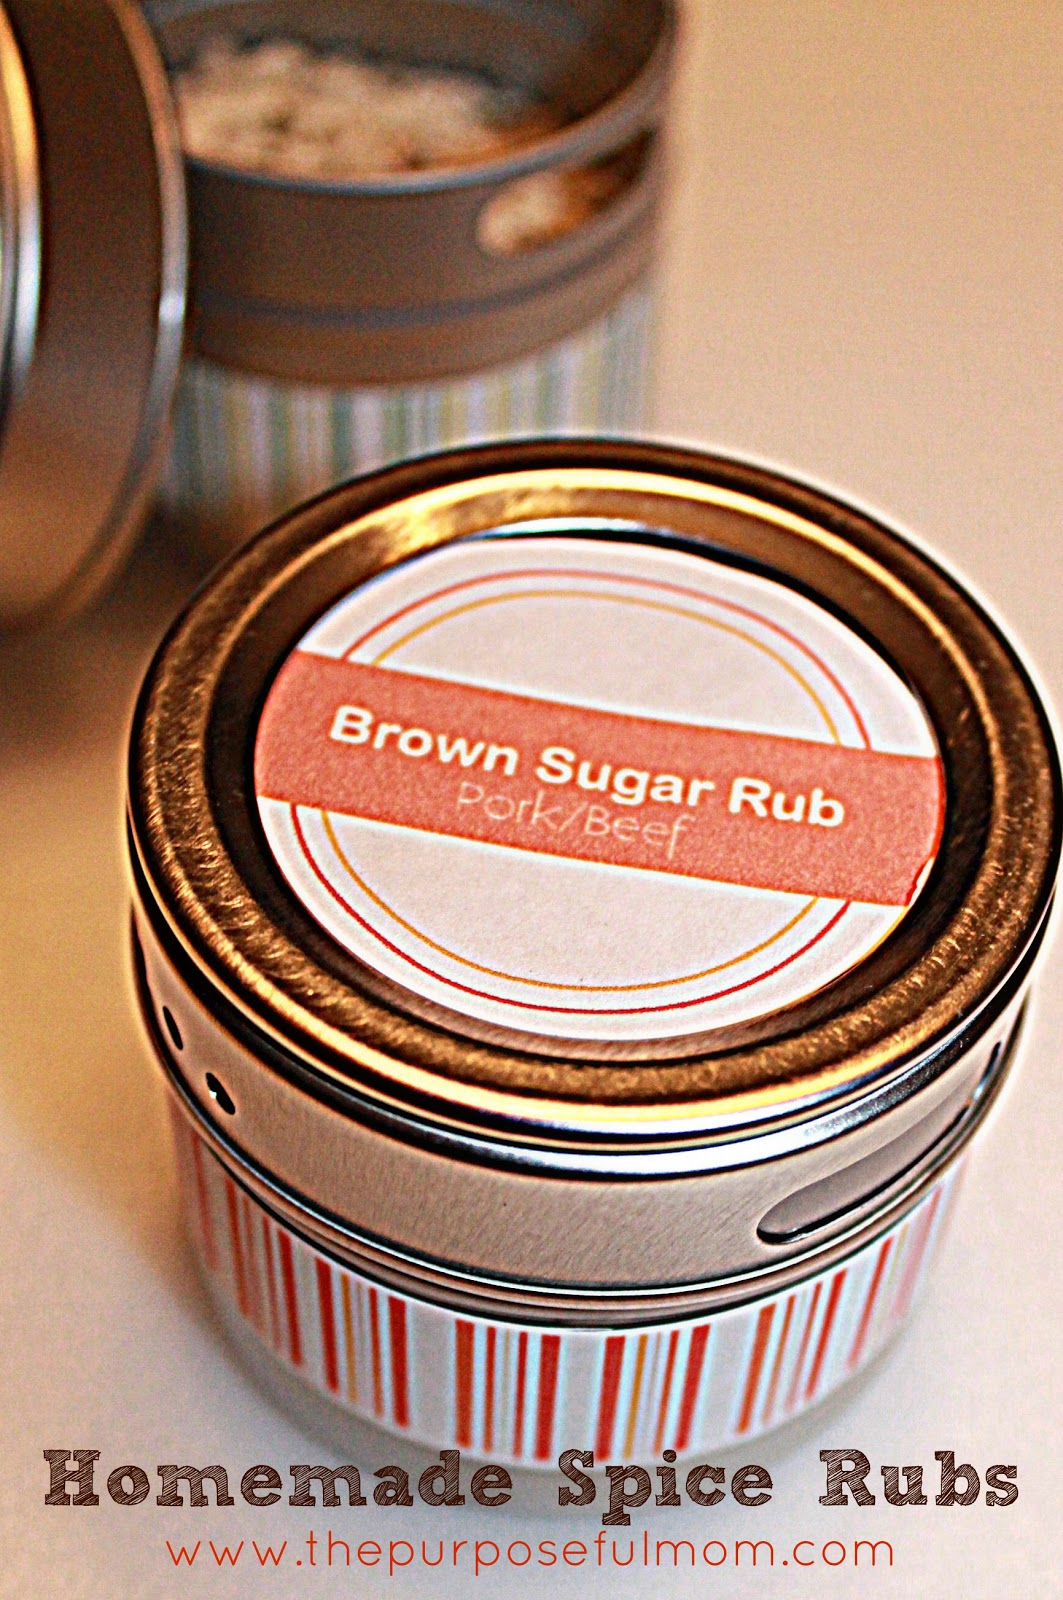 homemade spice rubs a diy christmas gift great for guys too